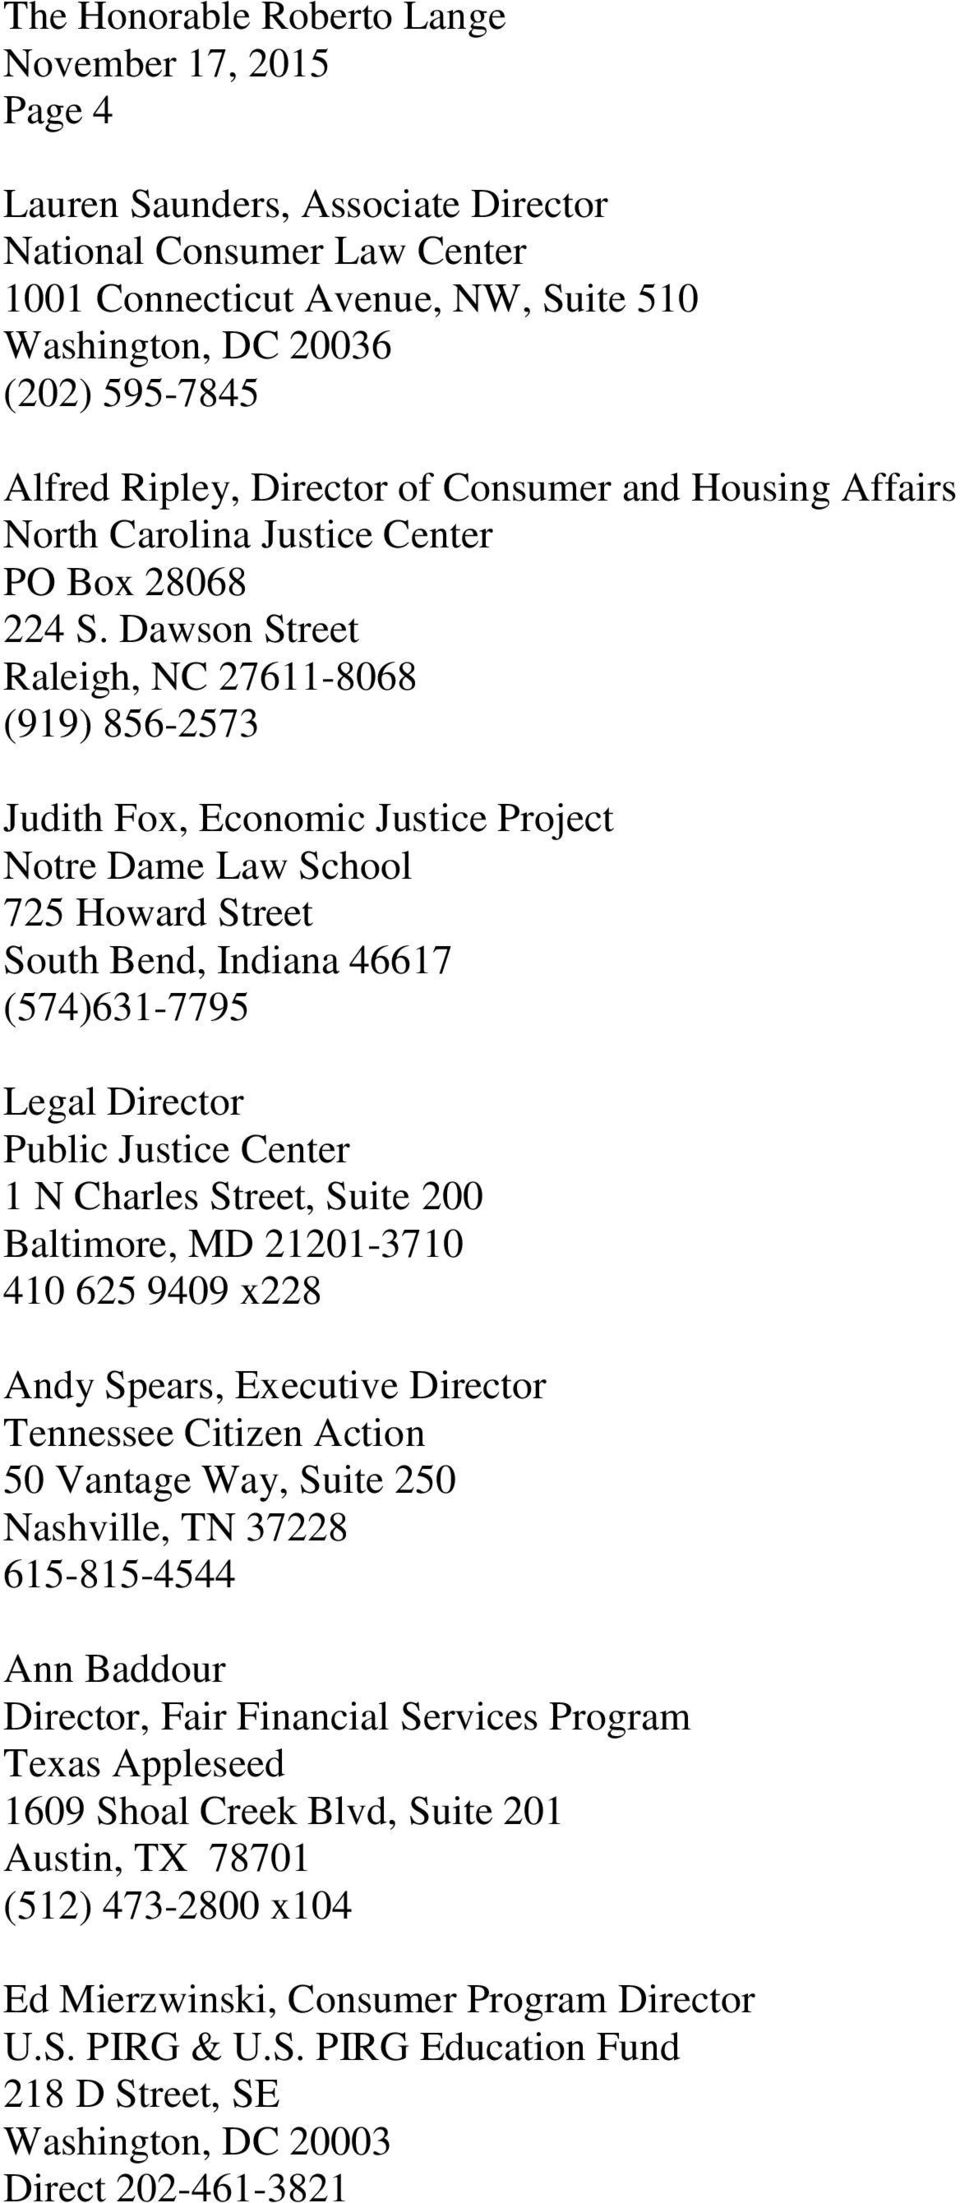 Dawson Street Raleigh, NC 27611-8068 (919) 856-2573 Judith Fox, Economic Justice Project Notre Dame Law School 725 Howard Street South Bend, Indiana 46617 (574)631-7795 Legal Director Public Justice